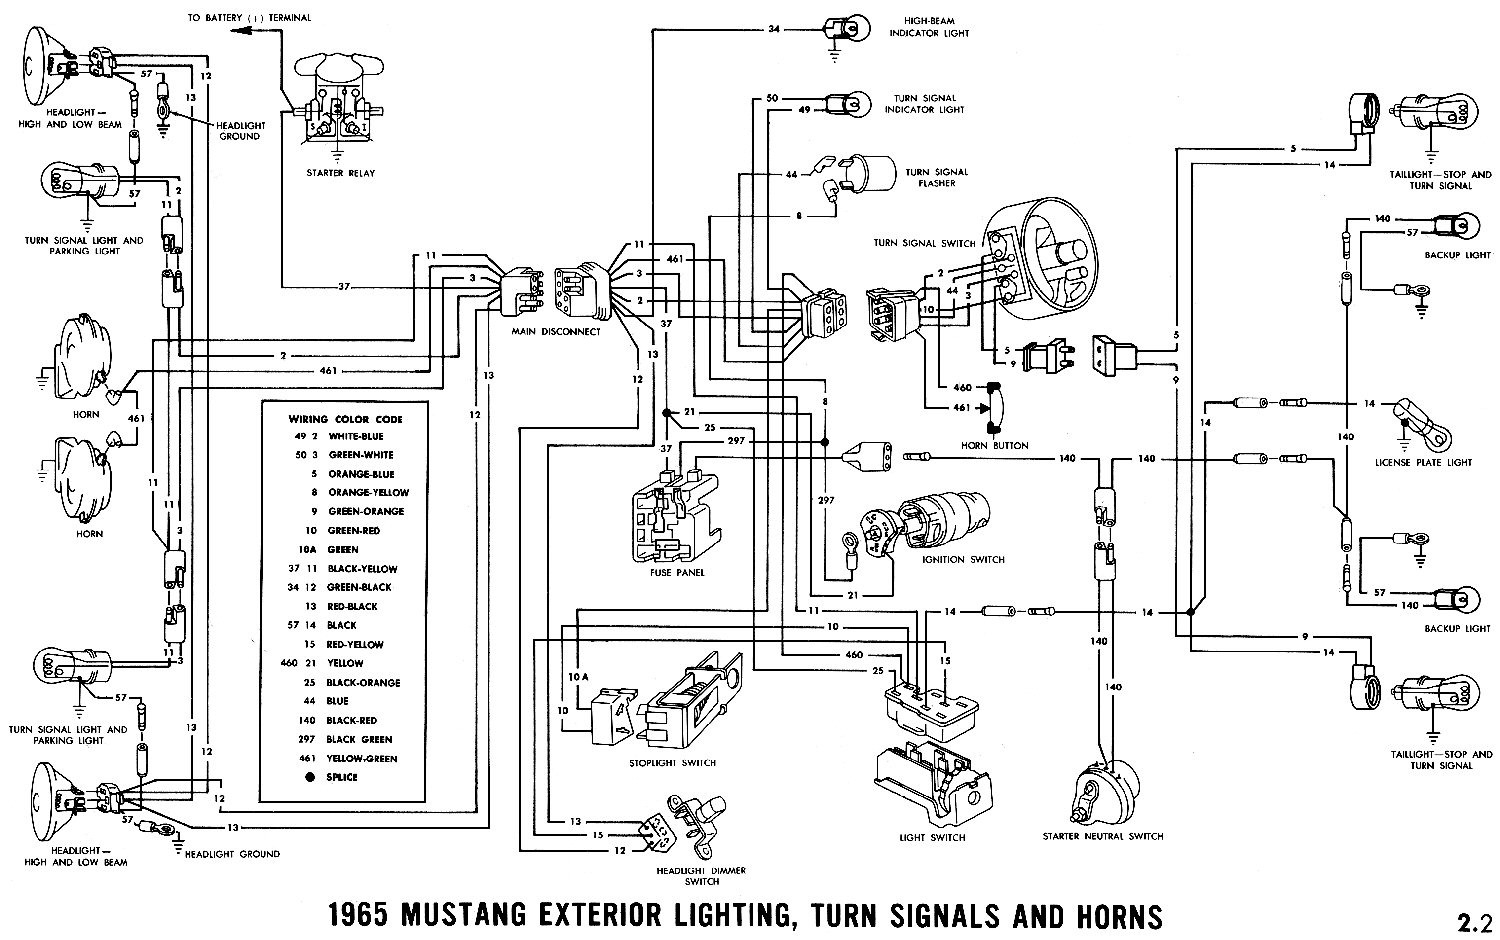 hight resolution of 1965 mustang ignition switch wiring diagram collection 1966 mustang wiring diagram new 1968 mustang wiring